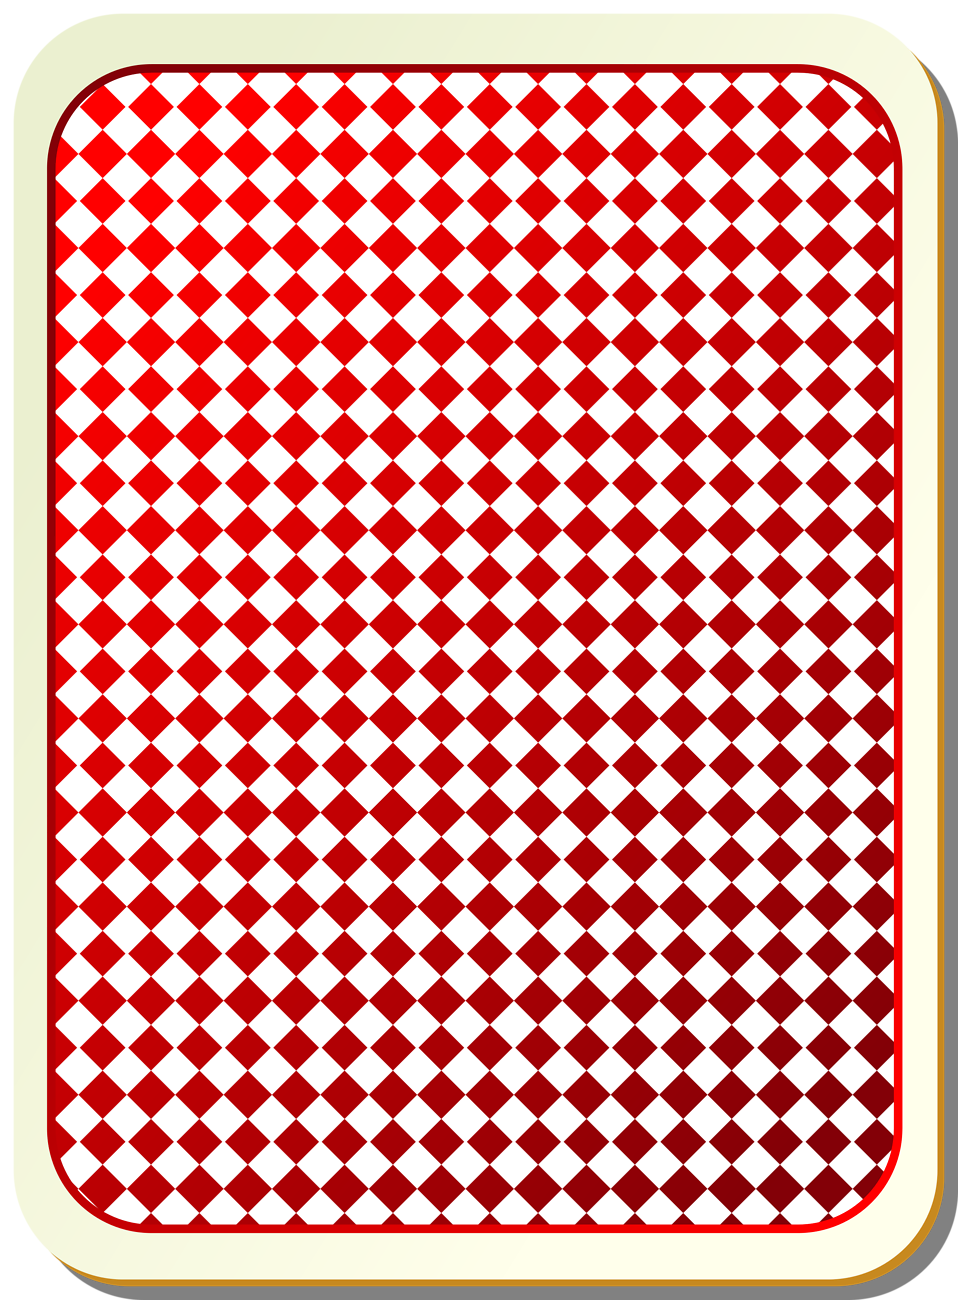 Playing card back clipart vector royalty free download Free Playing Card Back Png, Download Free Clip Art, Free Clip Art on ... vector royalty free download